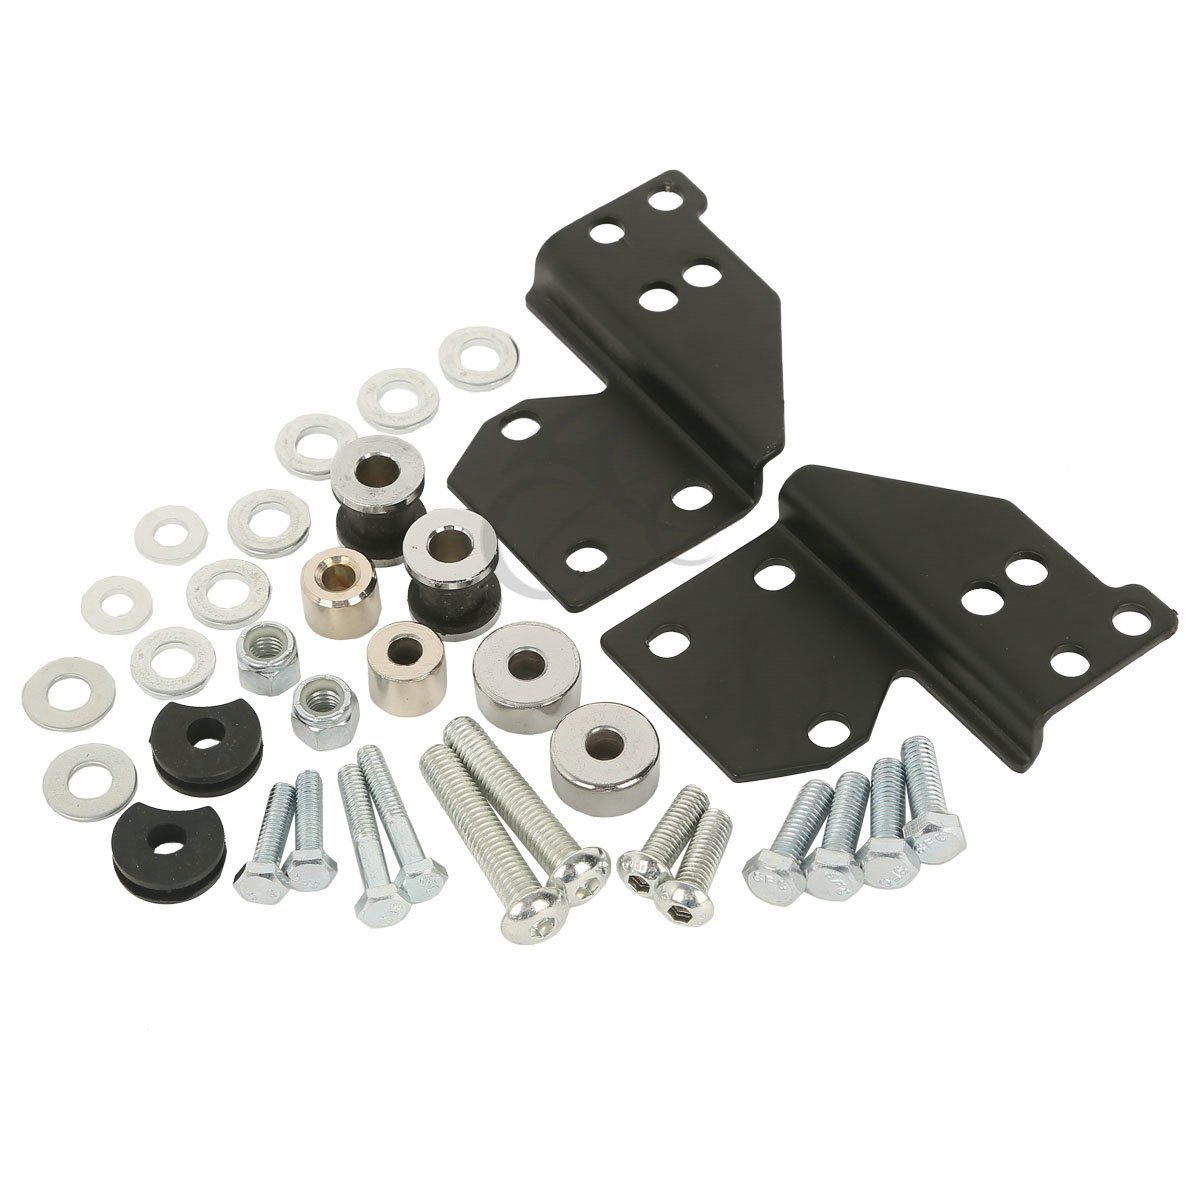 XFMT Detachables Front Docking Kit For Harley Touring Models 1997-2008 1997 (Replace Part Number 53803-06, Also kit 53660-05 and 53658-05 for 1994-1996 models)